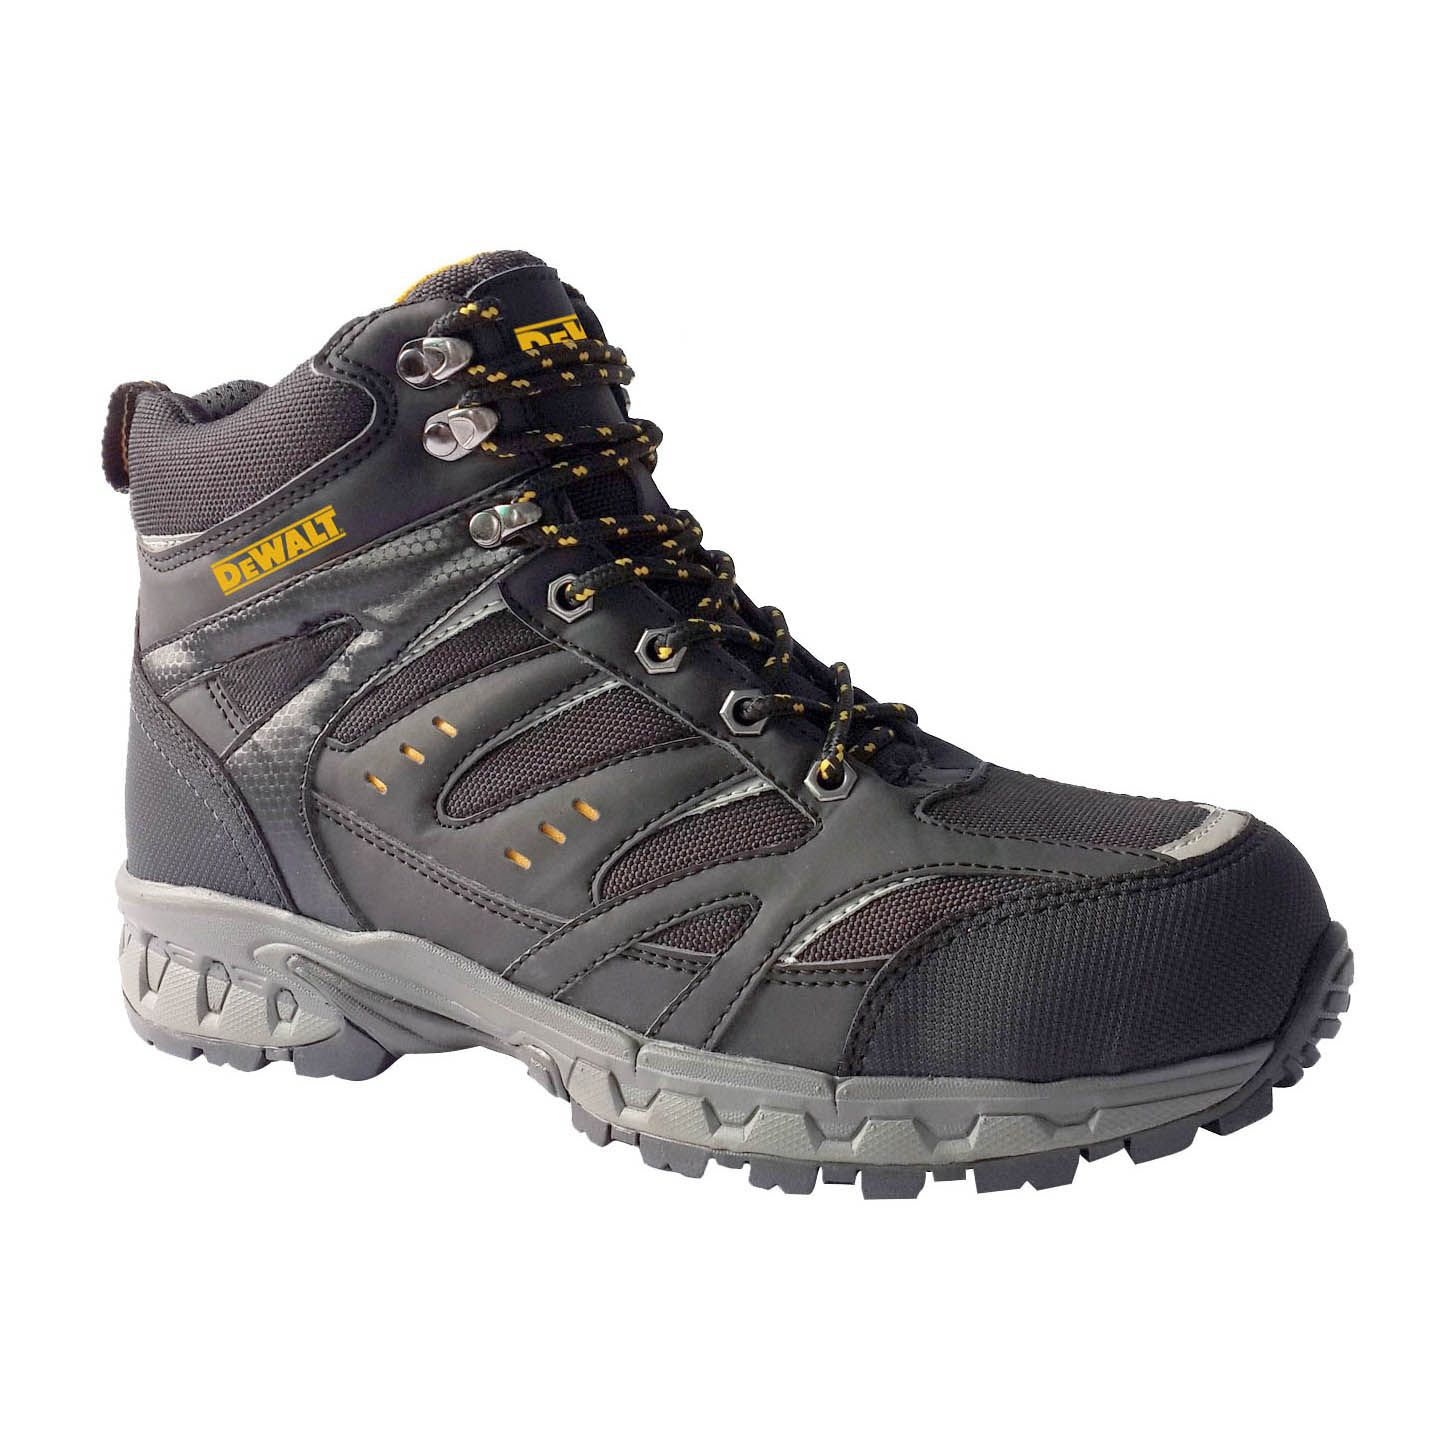 7d1f61981ca DeWalt Hiker Safety boots, Size 9 | Departments | DIY at B&Q